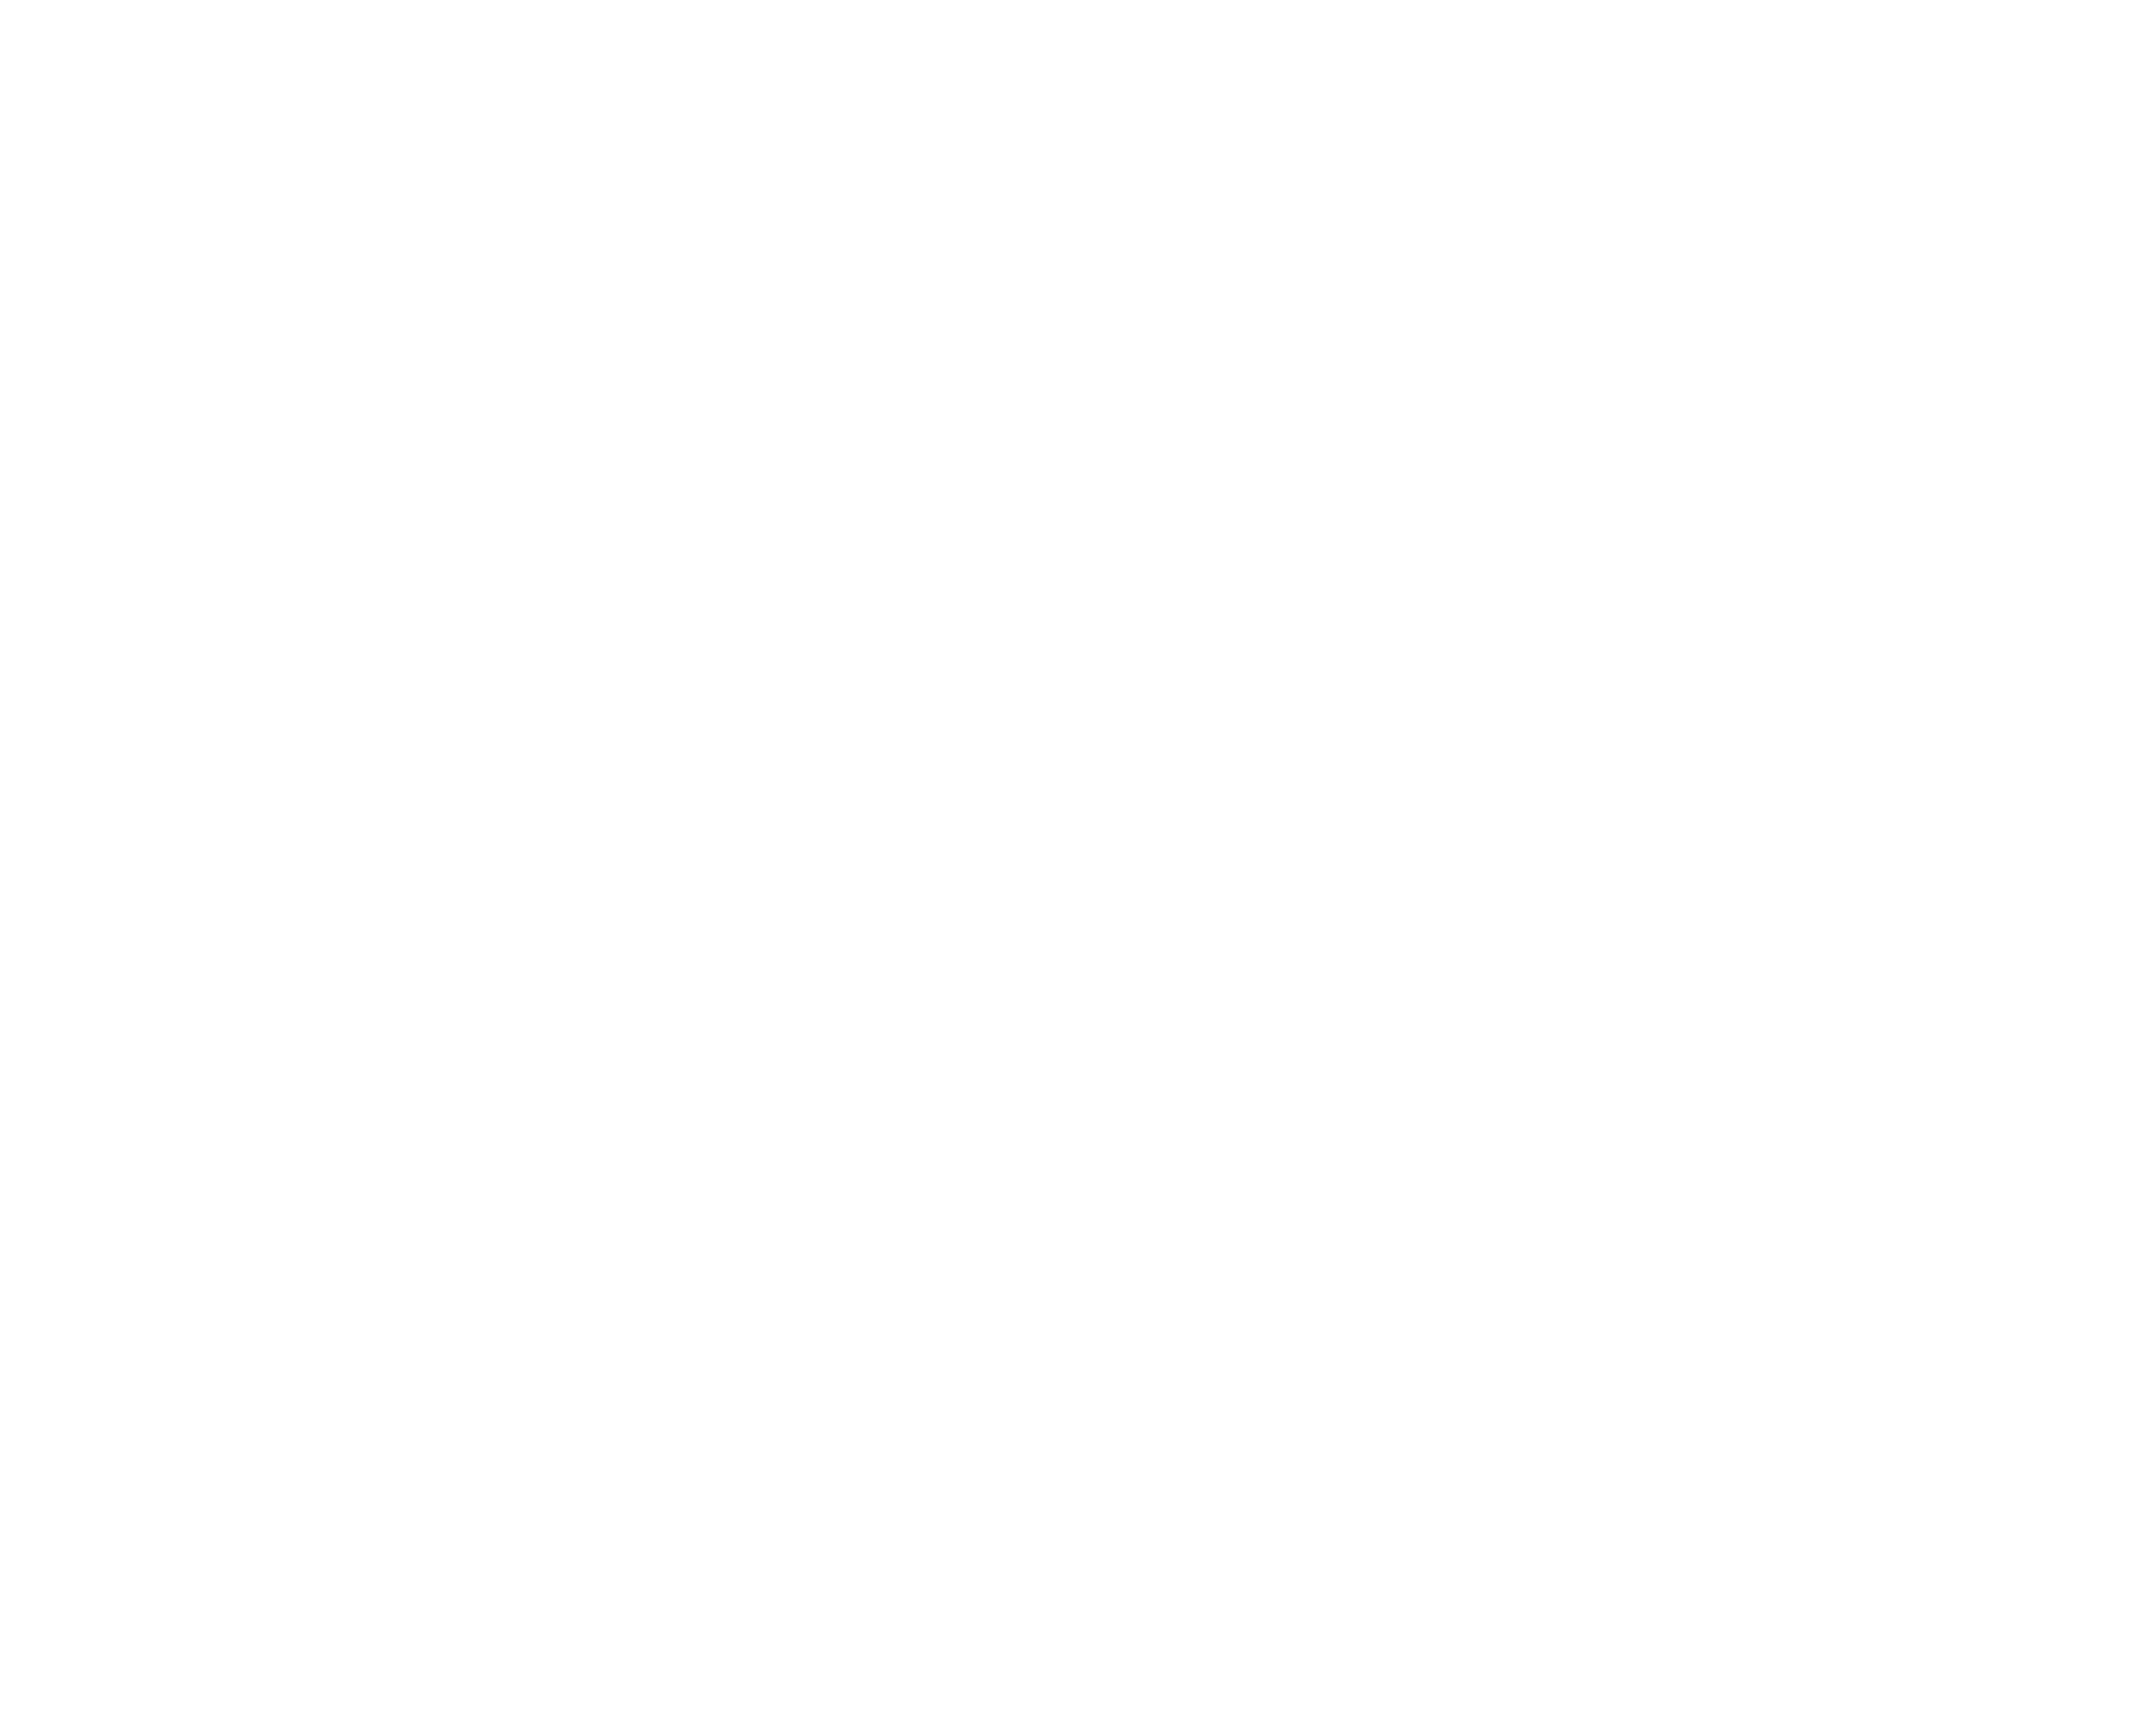 UCRC - Utility Customer Research Consortium